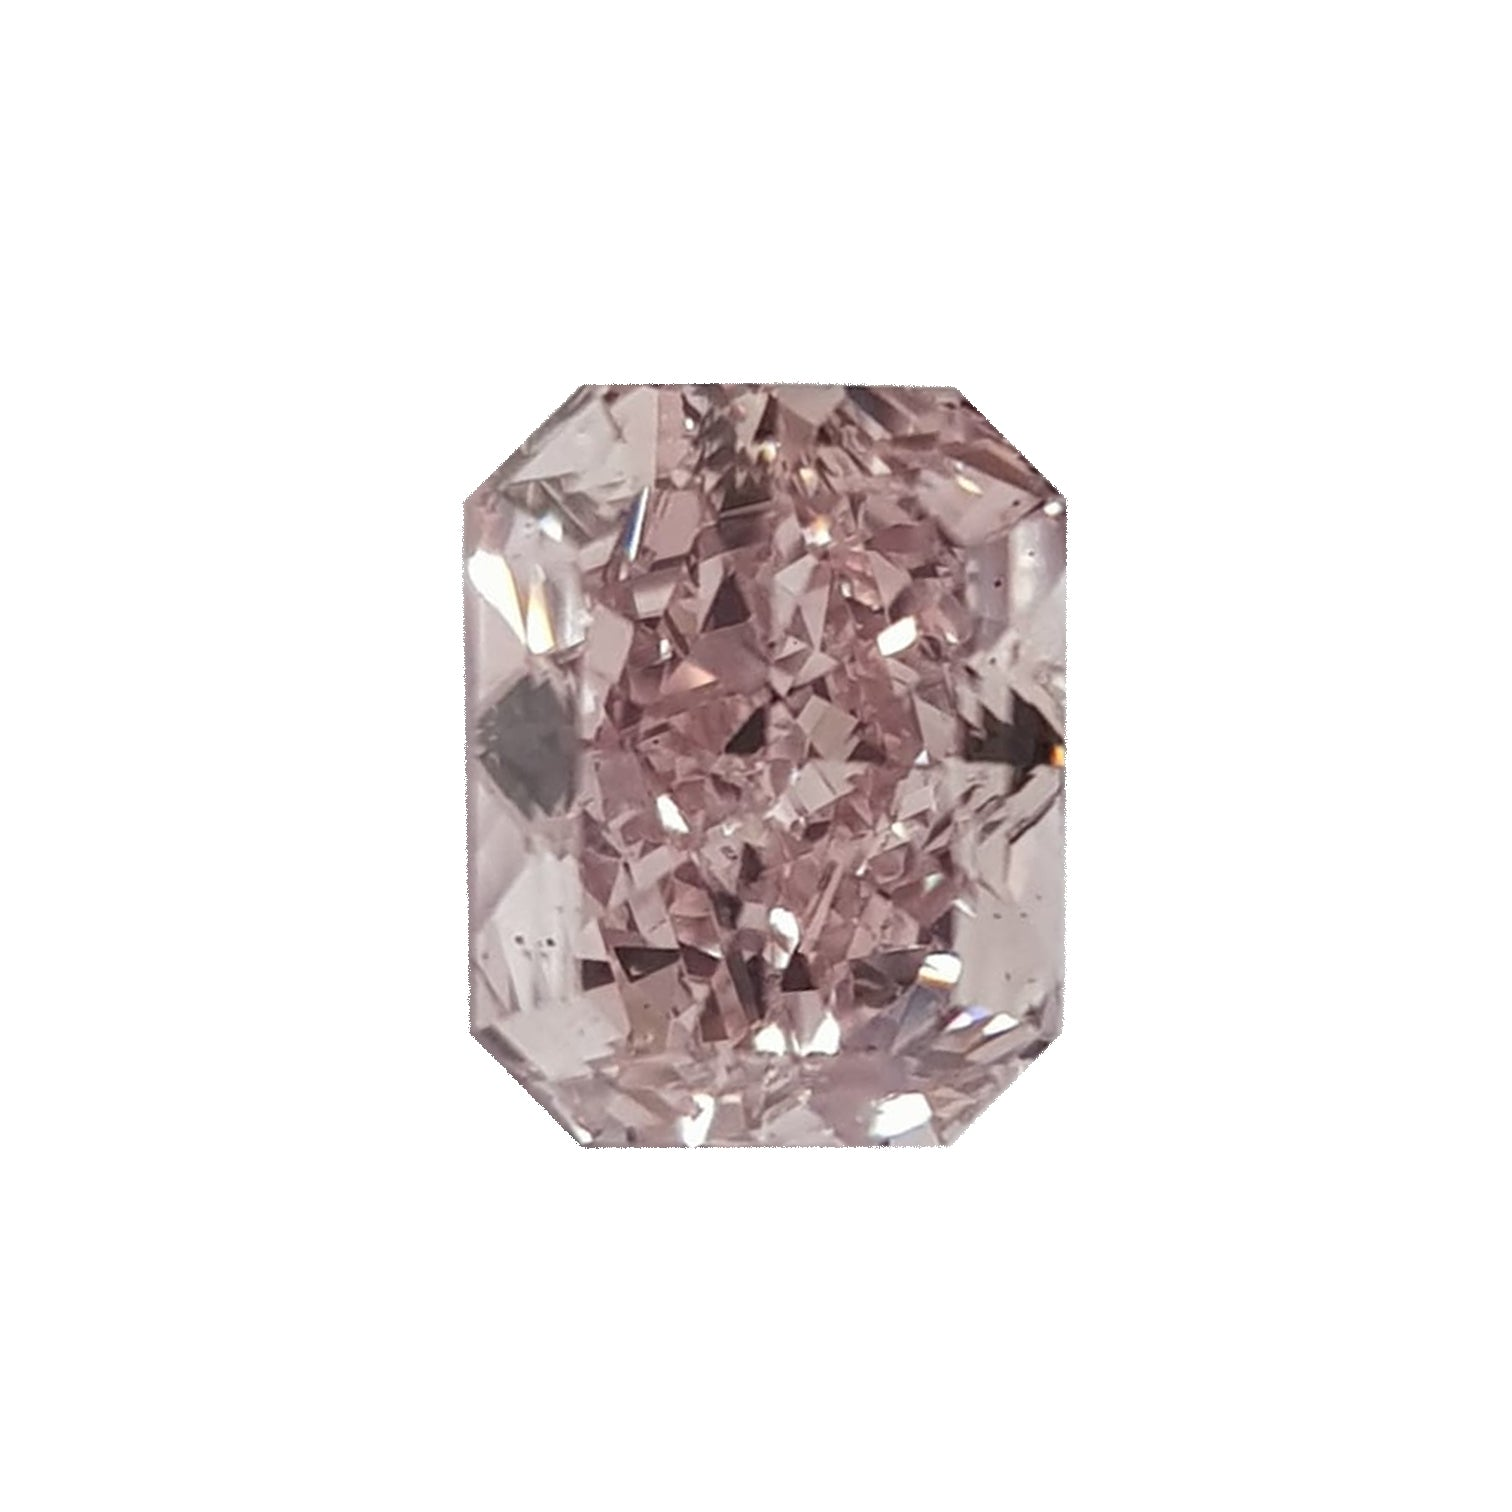 LOOSE DIAMOND | INVESTMENT | 2.02 ct.-Investment-MIKU Diamonds A/S